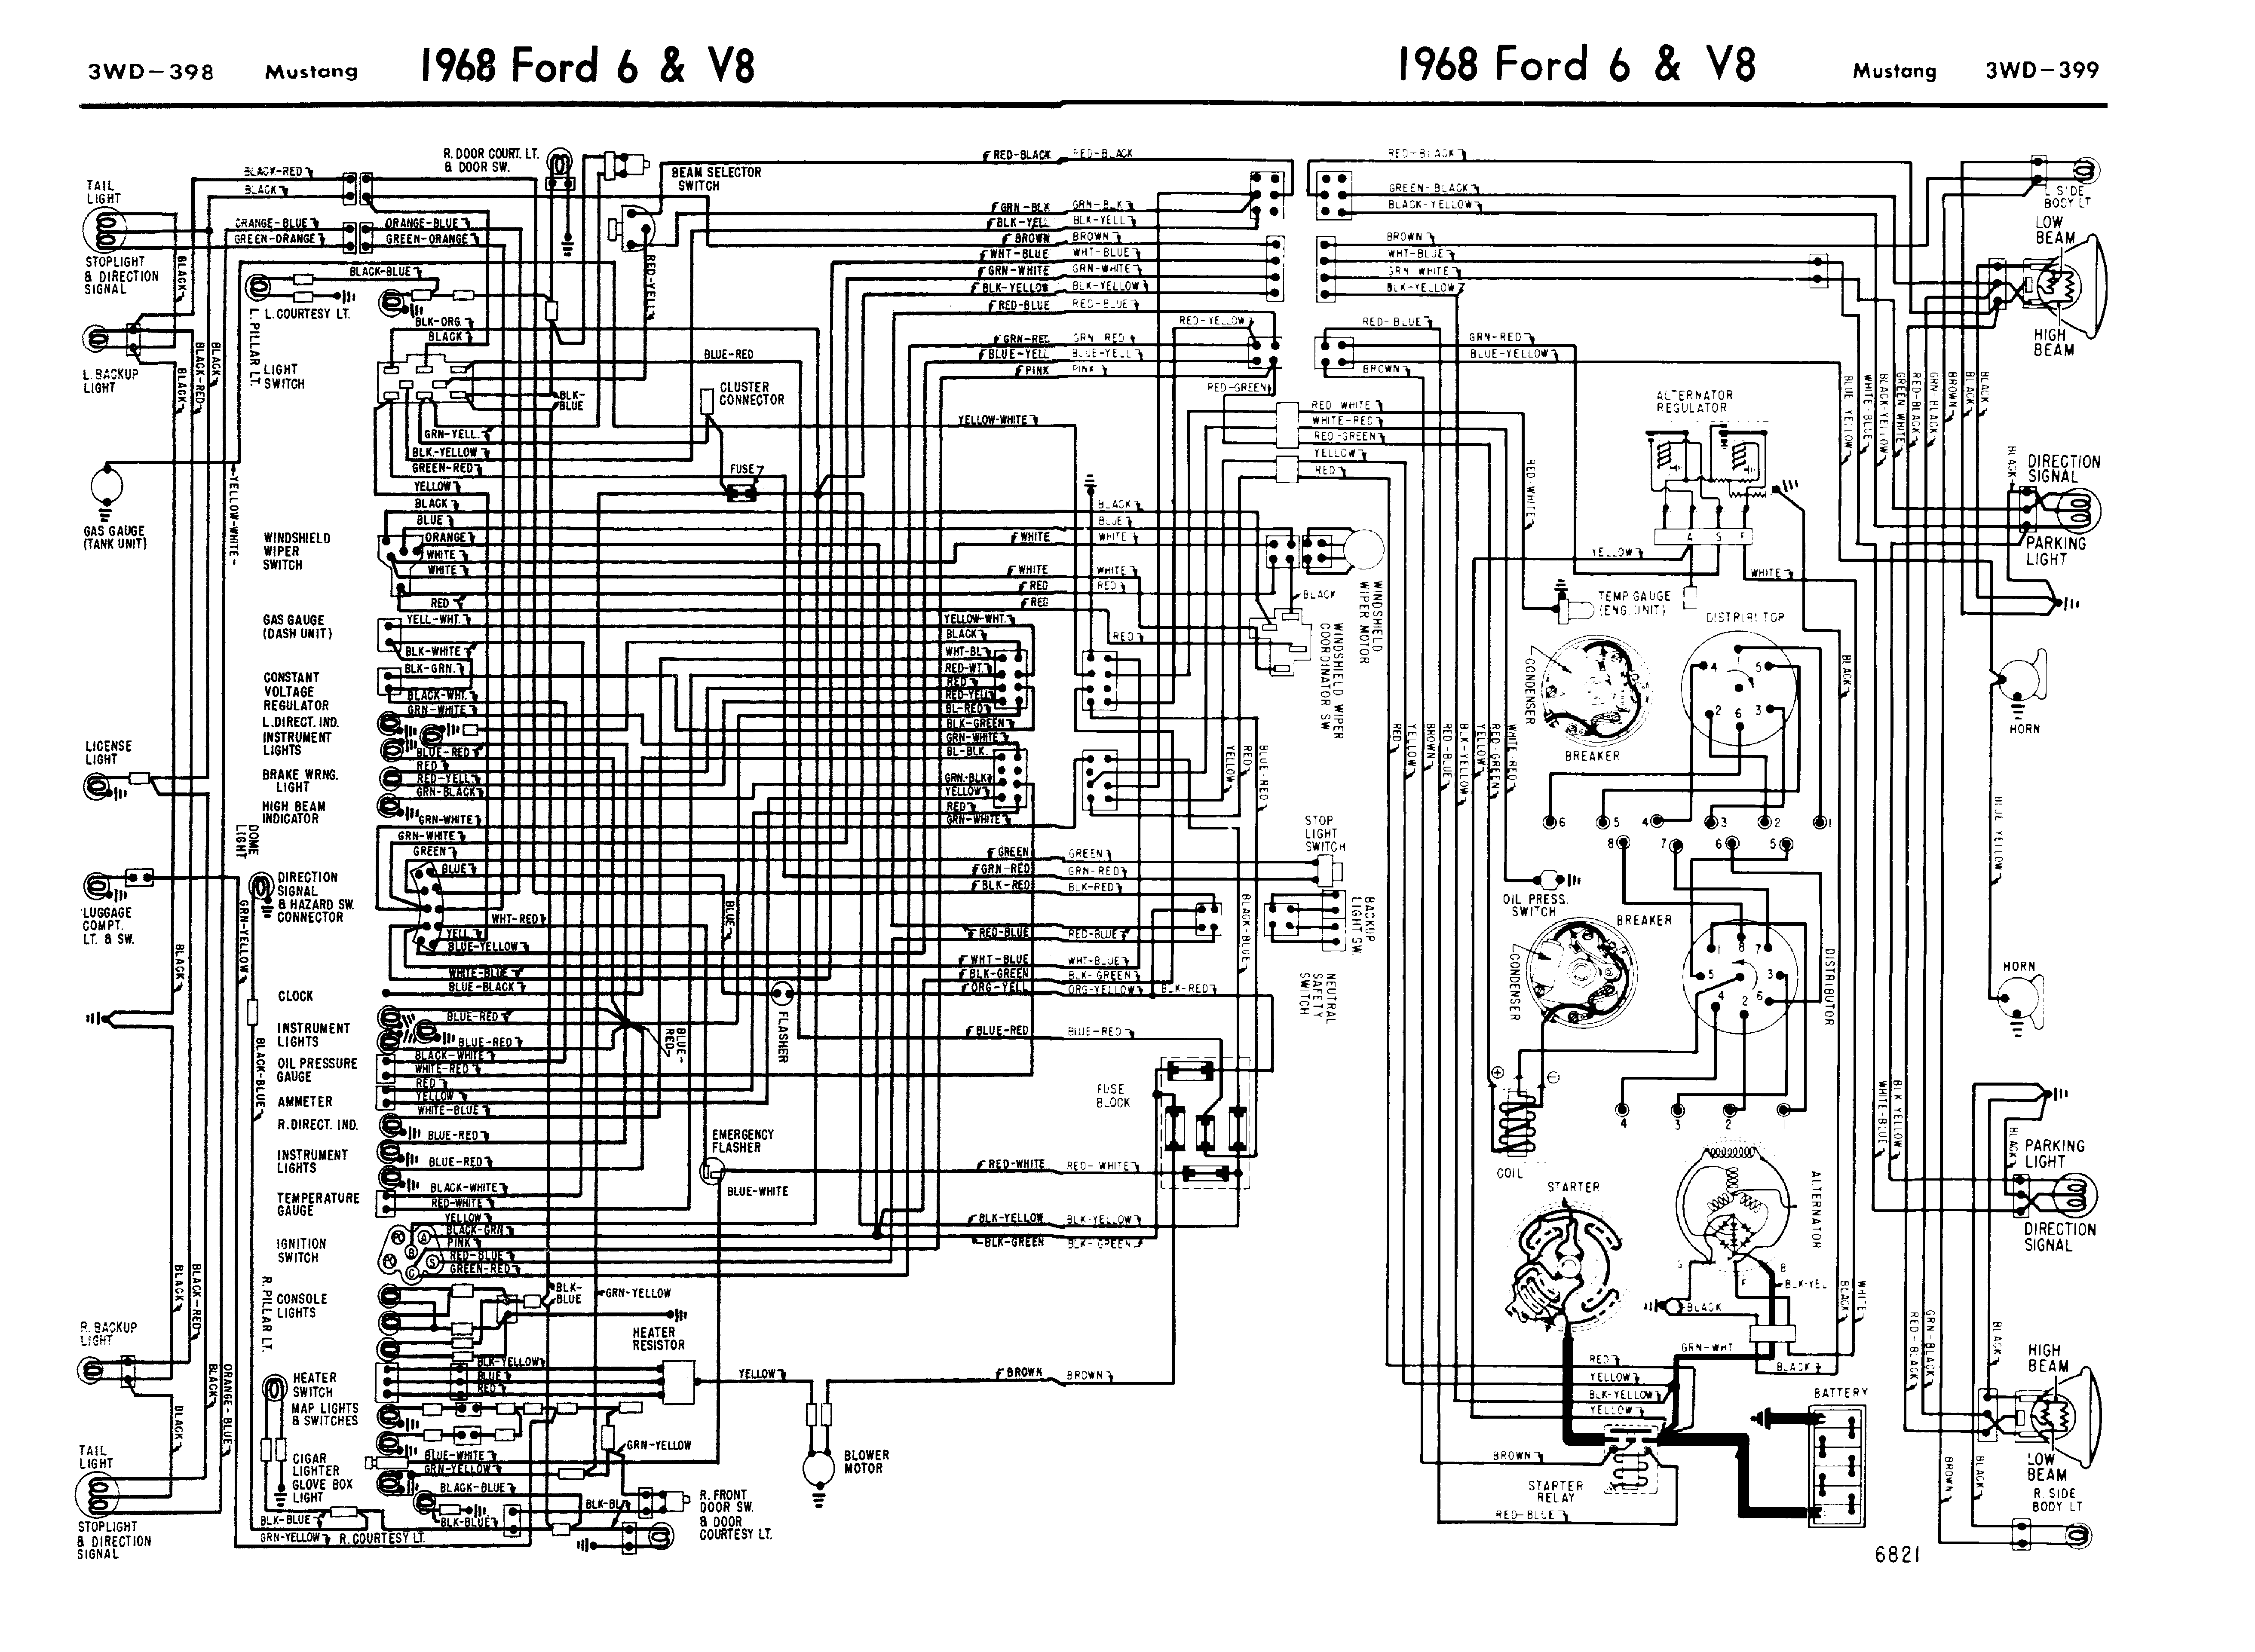 68mustang_wiring_guide 1968 mustang wiring diagram pdf 1969 mustang ignition switch 1969 mustang wiring diagram online at gsmx.co